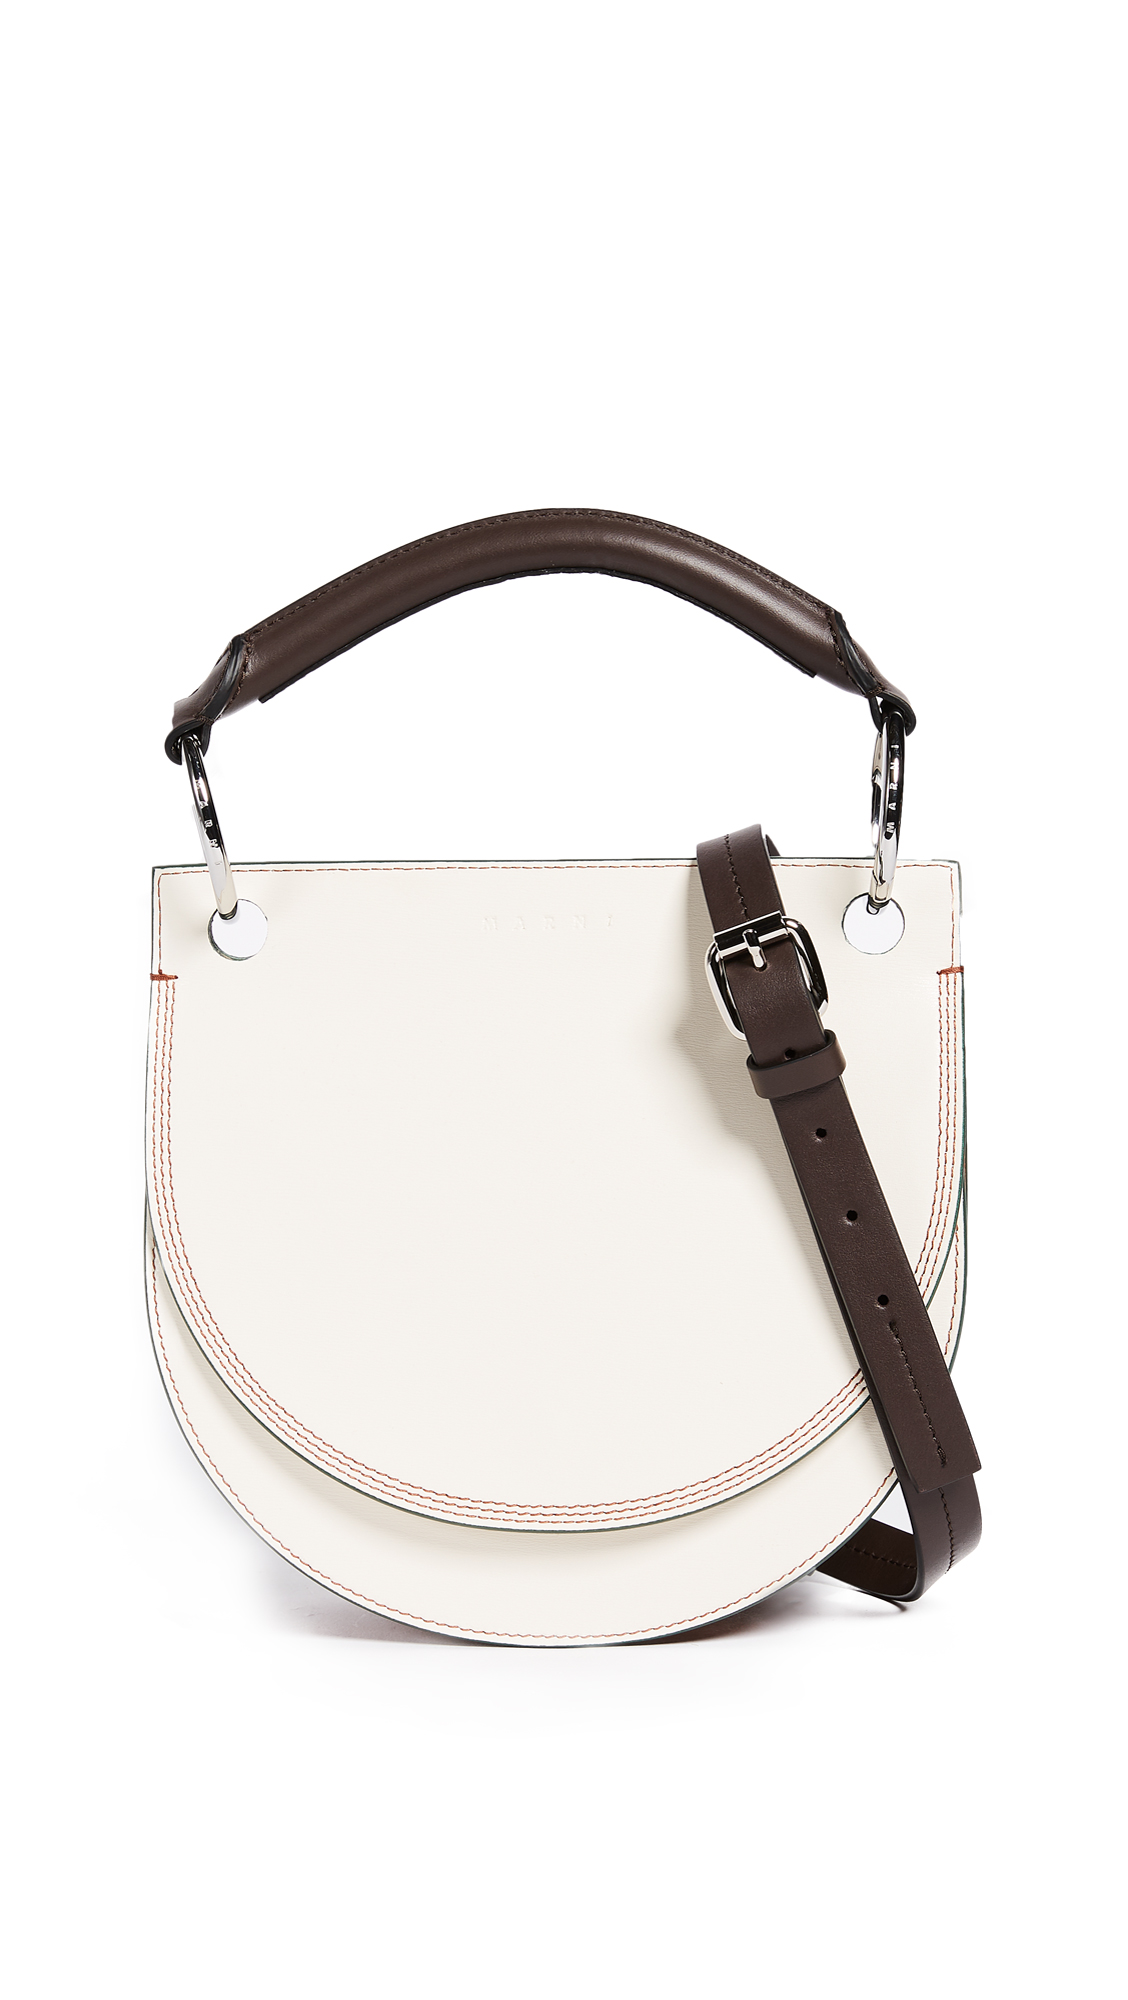 Marni Shoulder Bag - Antique White/Rock/Eggplant